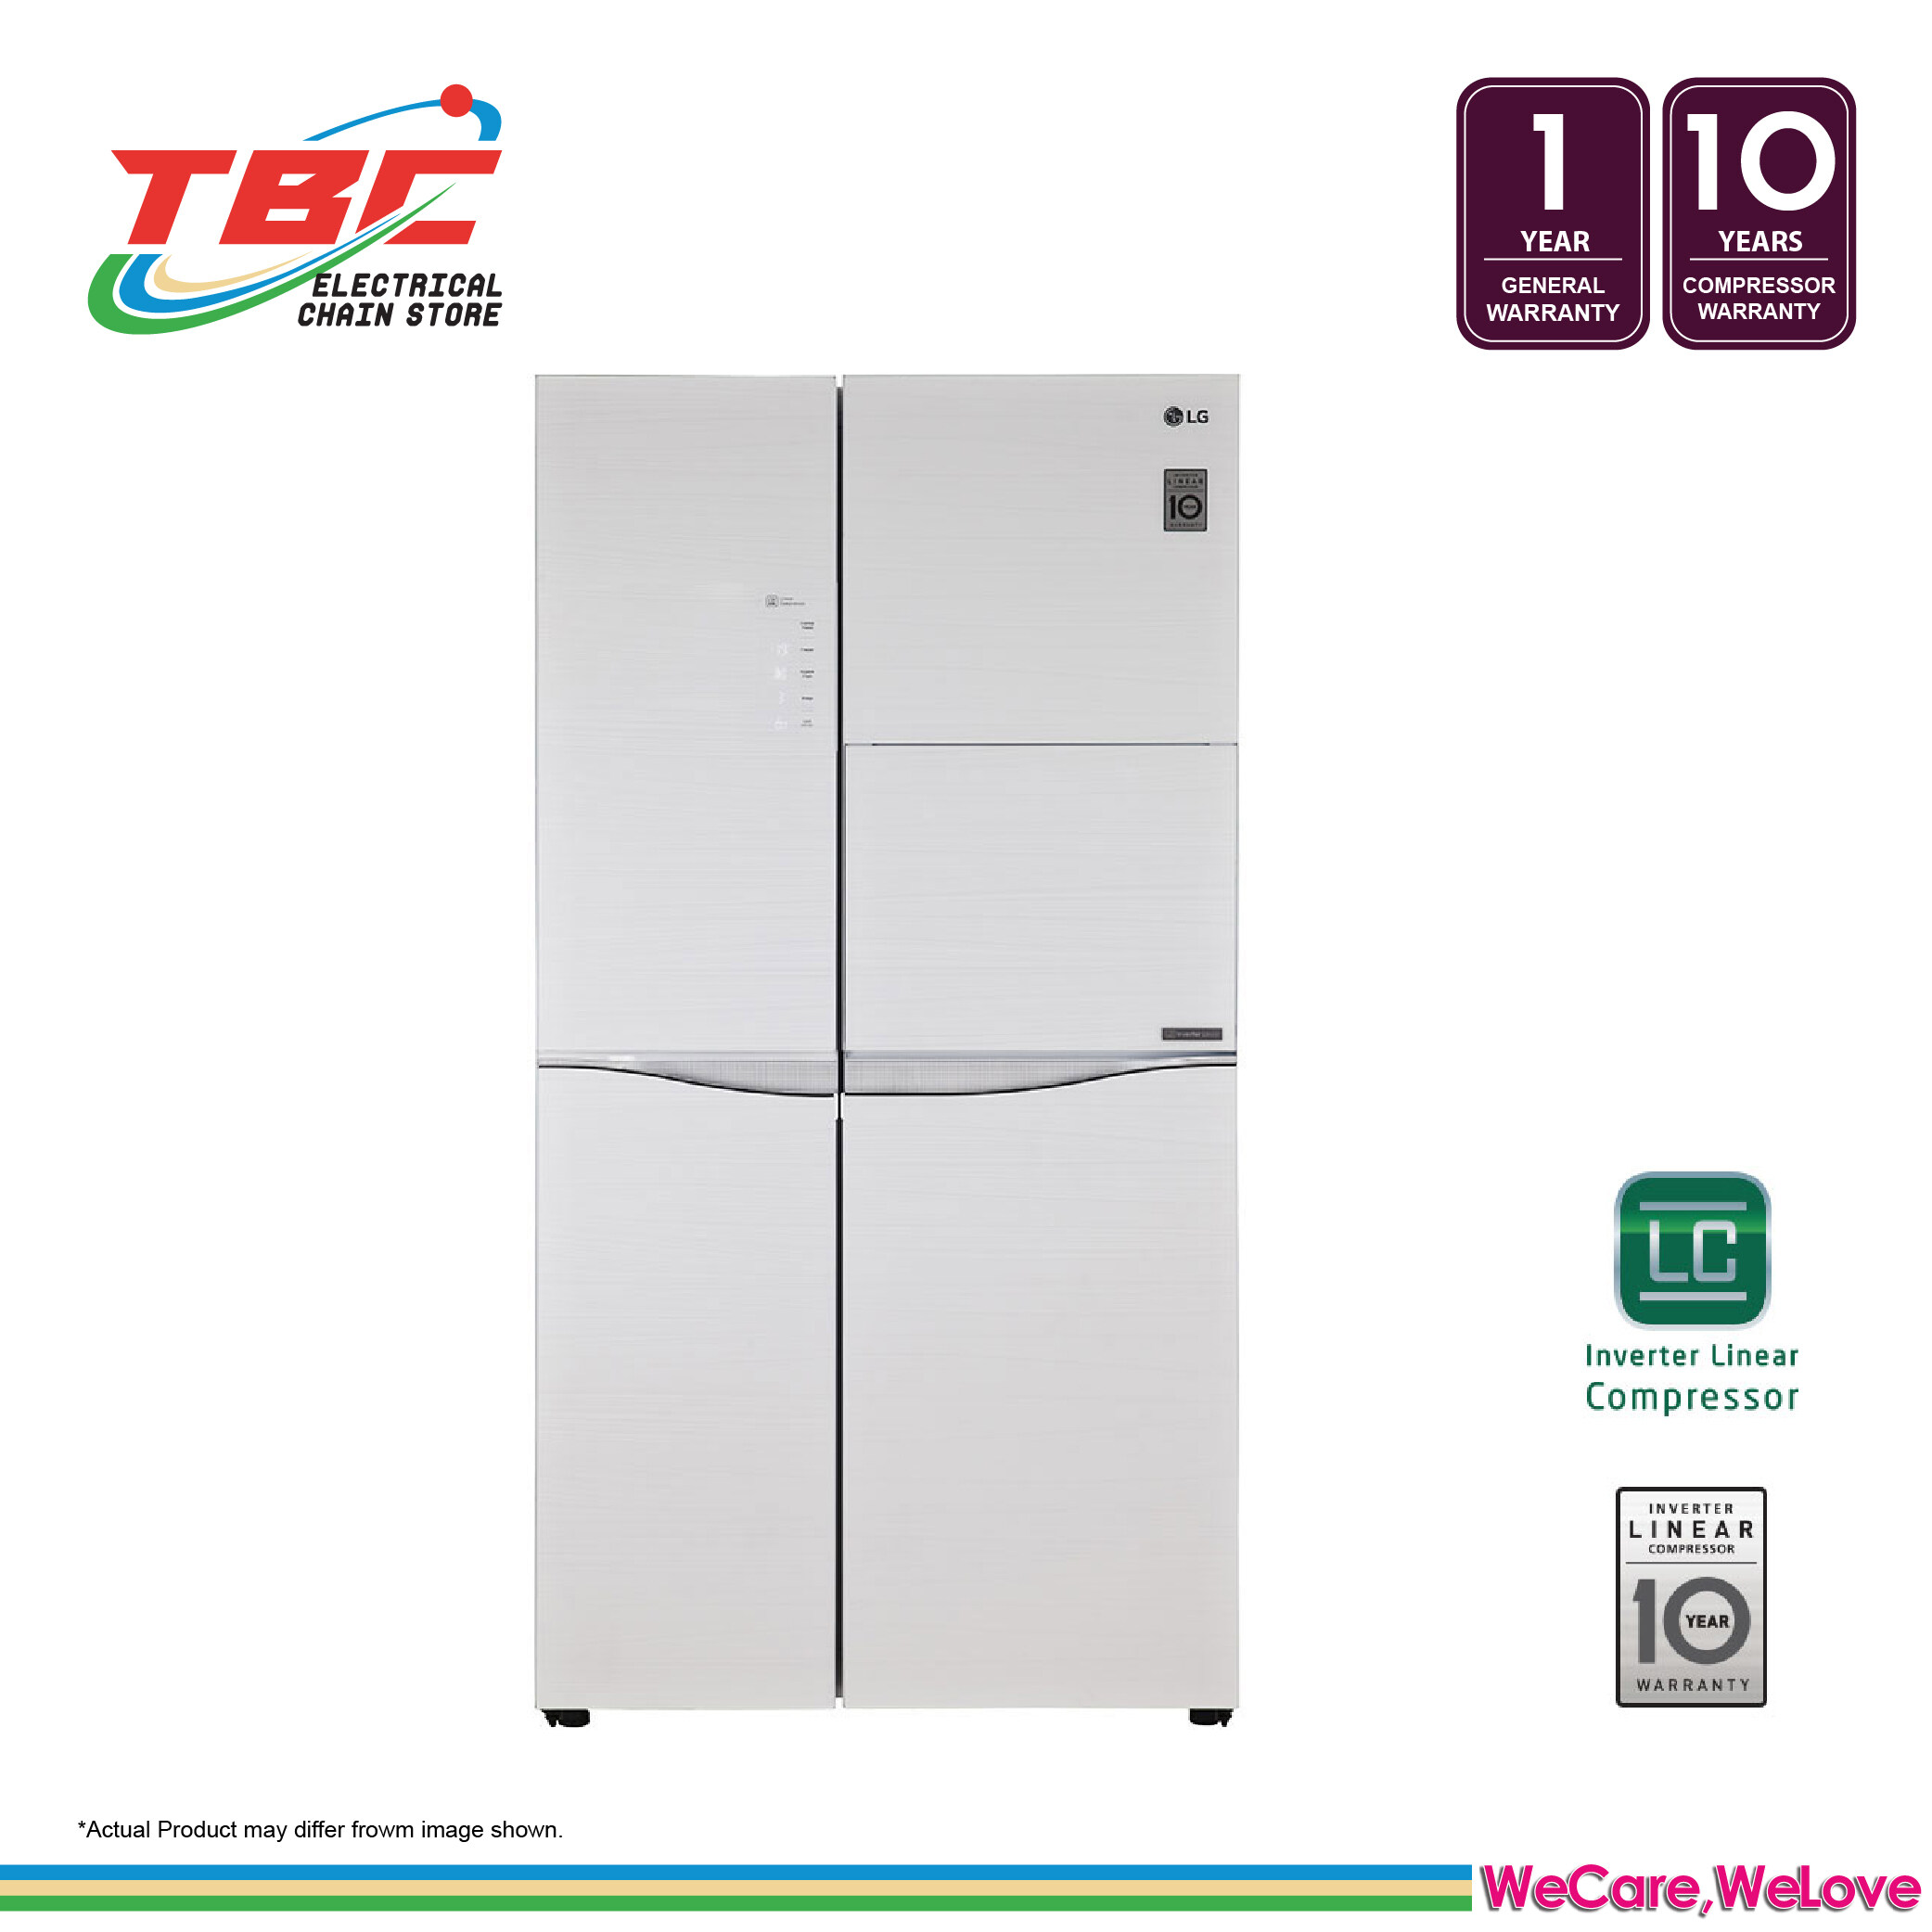 LG IEC Gross 675L Mega Capacity Side-by-Side Refrigerator with Home Bar GC-C247UGUV